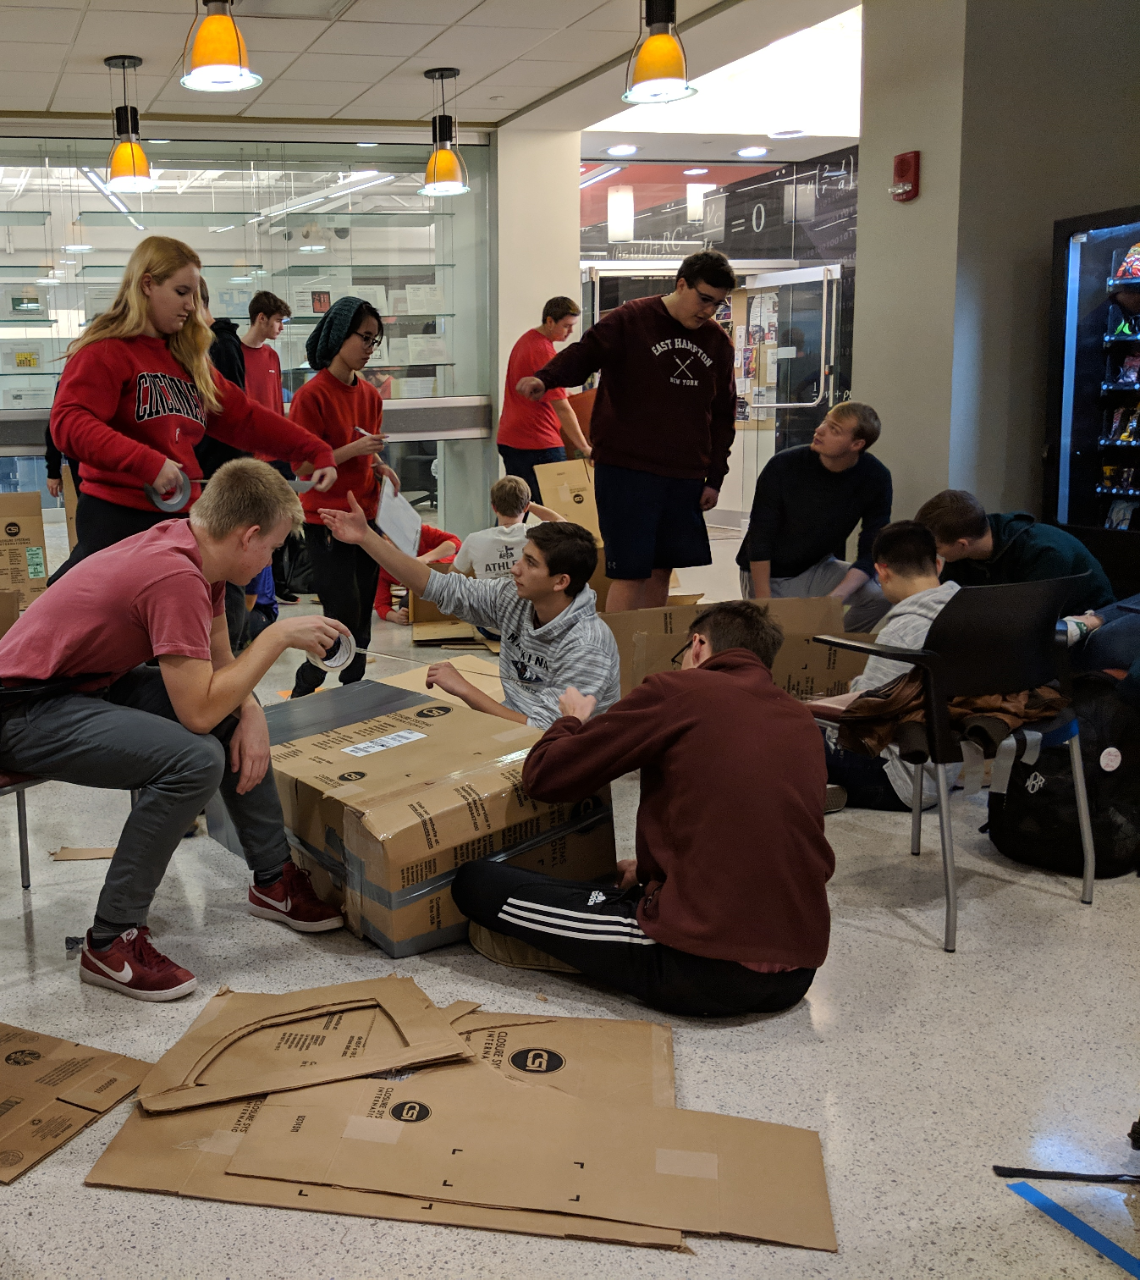 three groups of about a dozen in casual dress, stand and sit in a common area filled with cardboard and chairs.